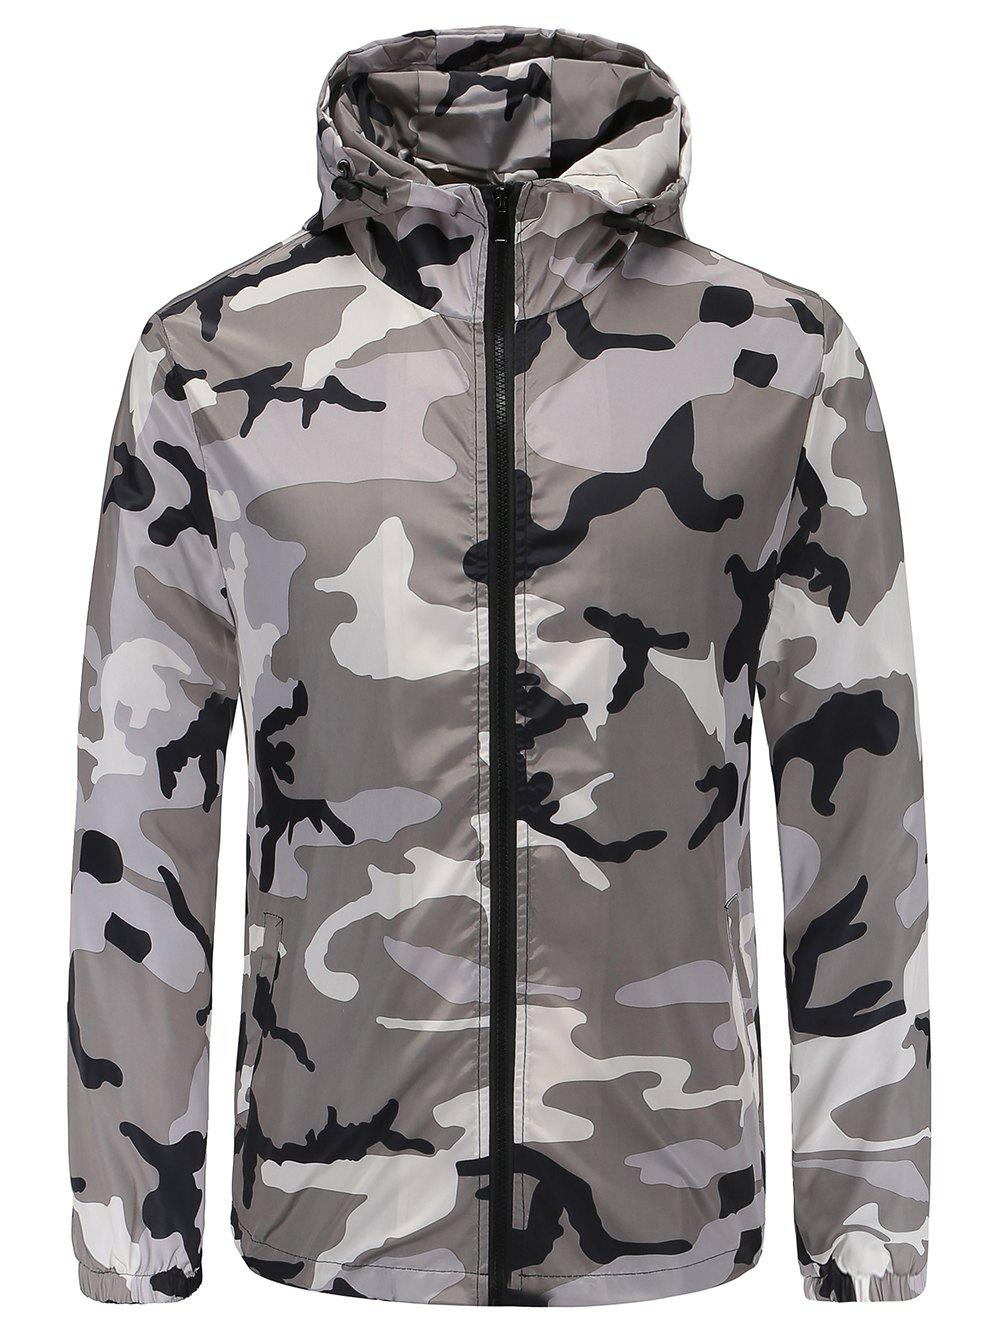 6f4d107af62c 31% OFF   2019 Casual Camouflage Print Hooded Jacket